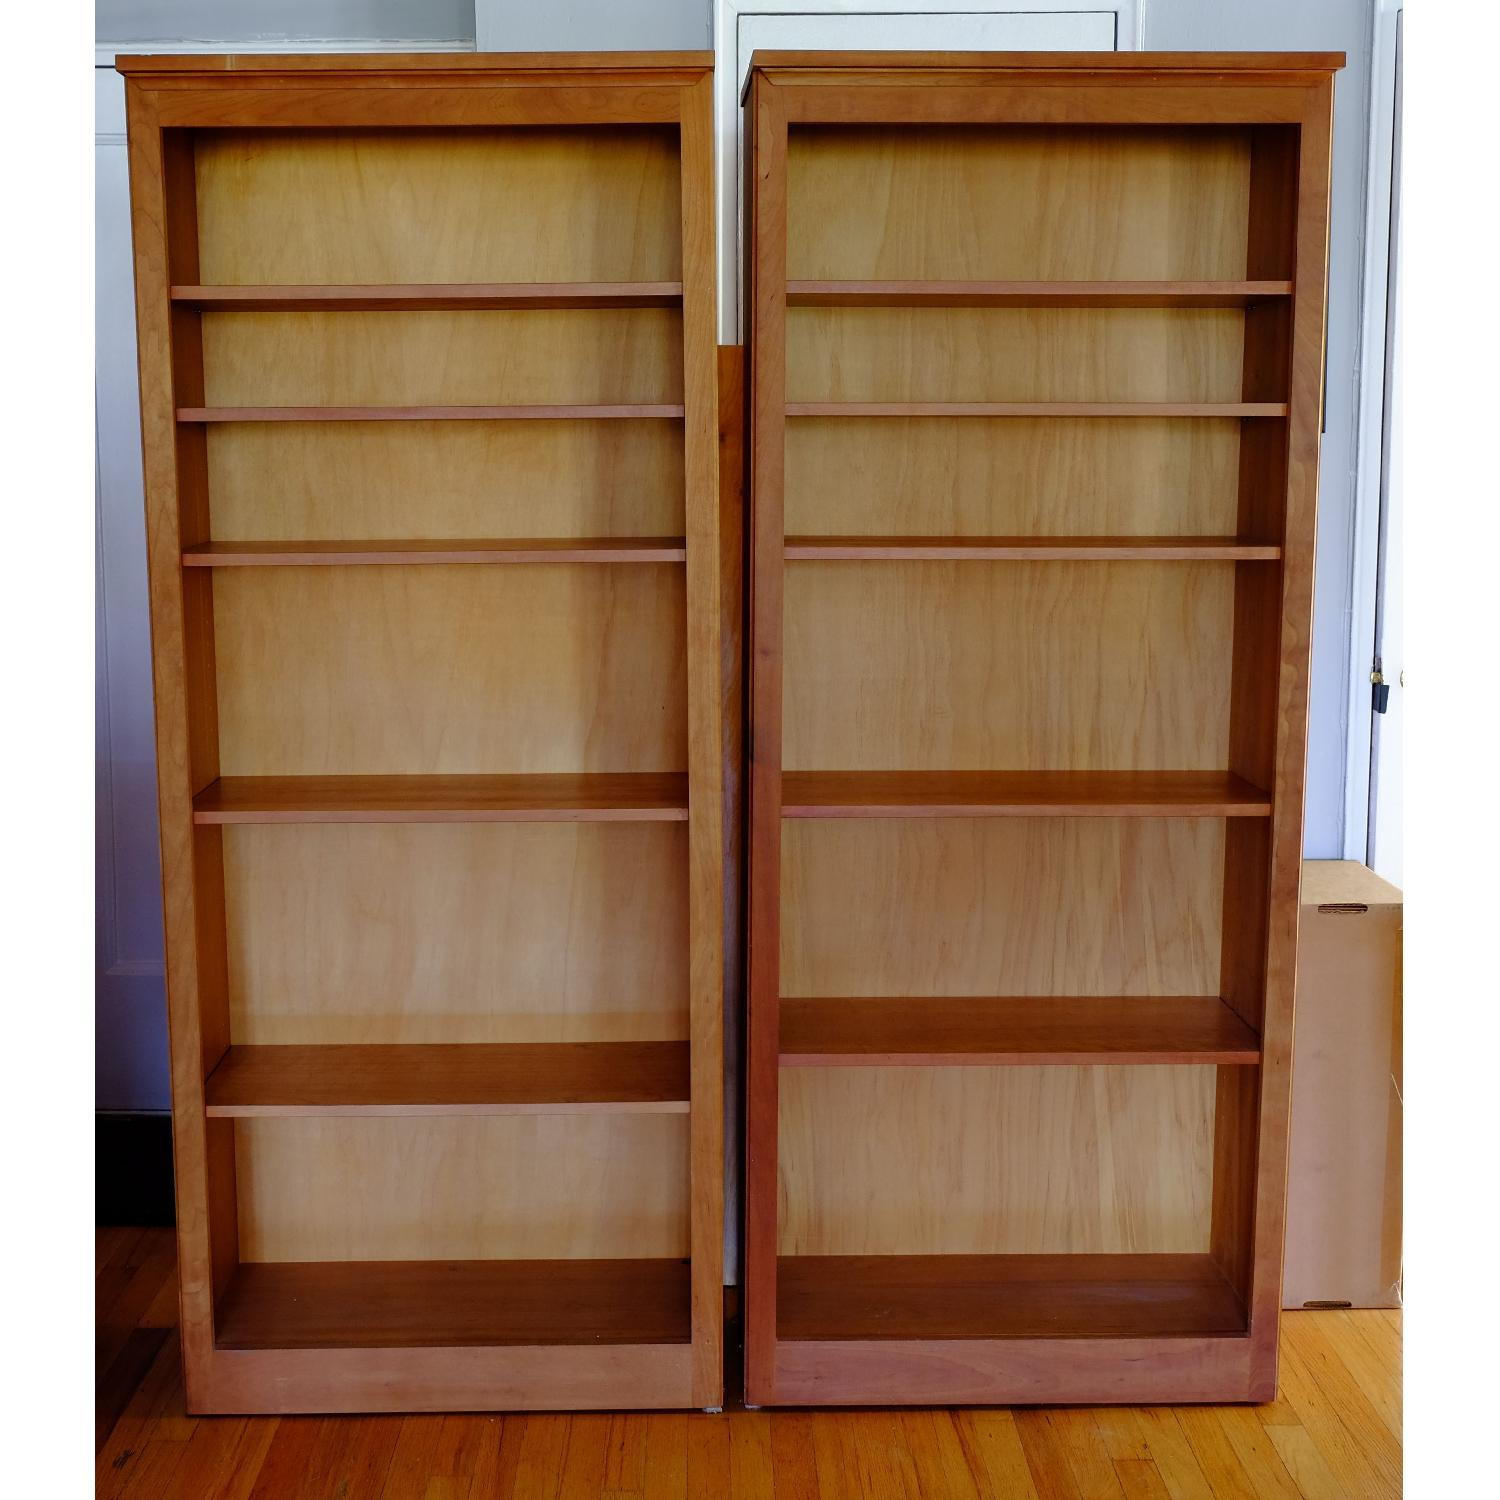 Crate & Barrel Matching Bookcase Set - image-4